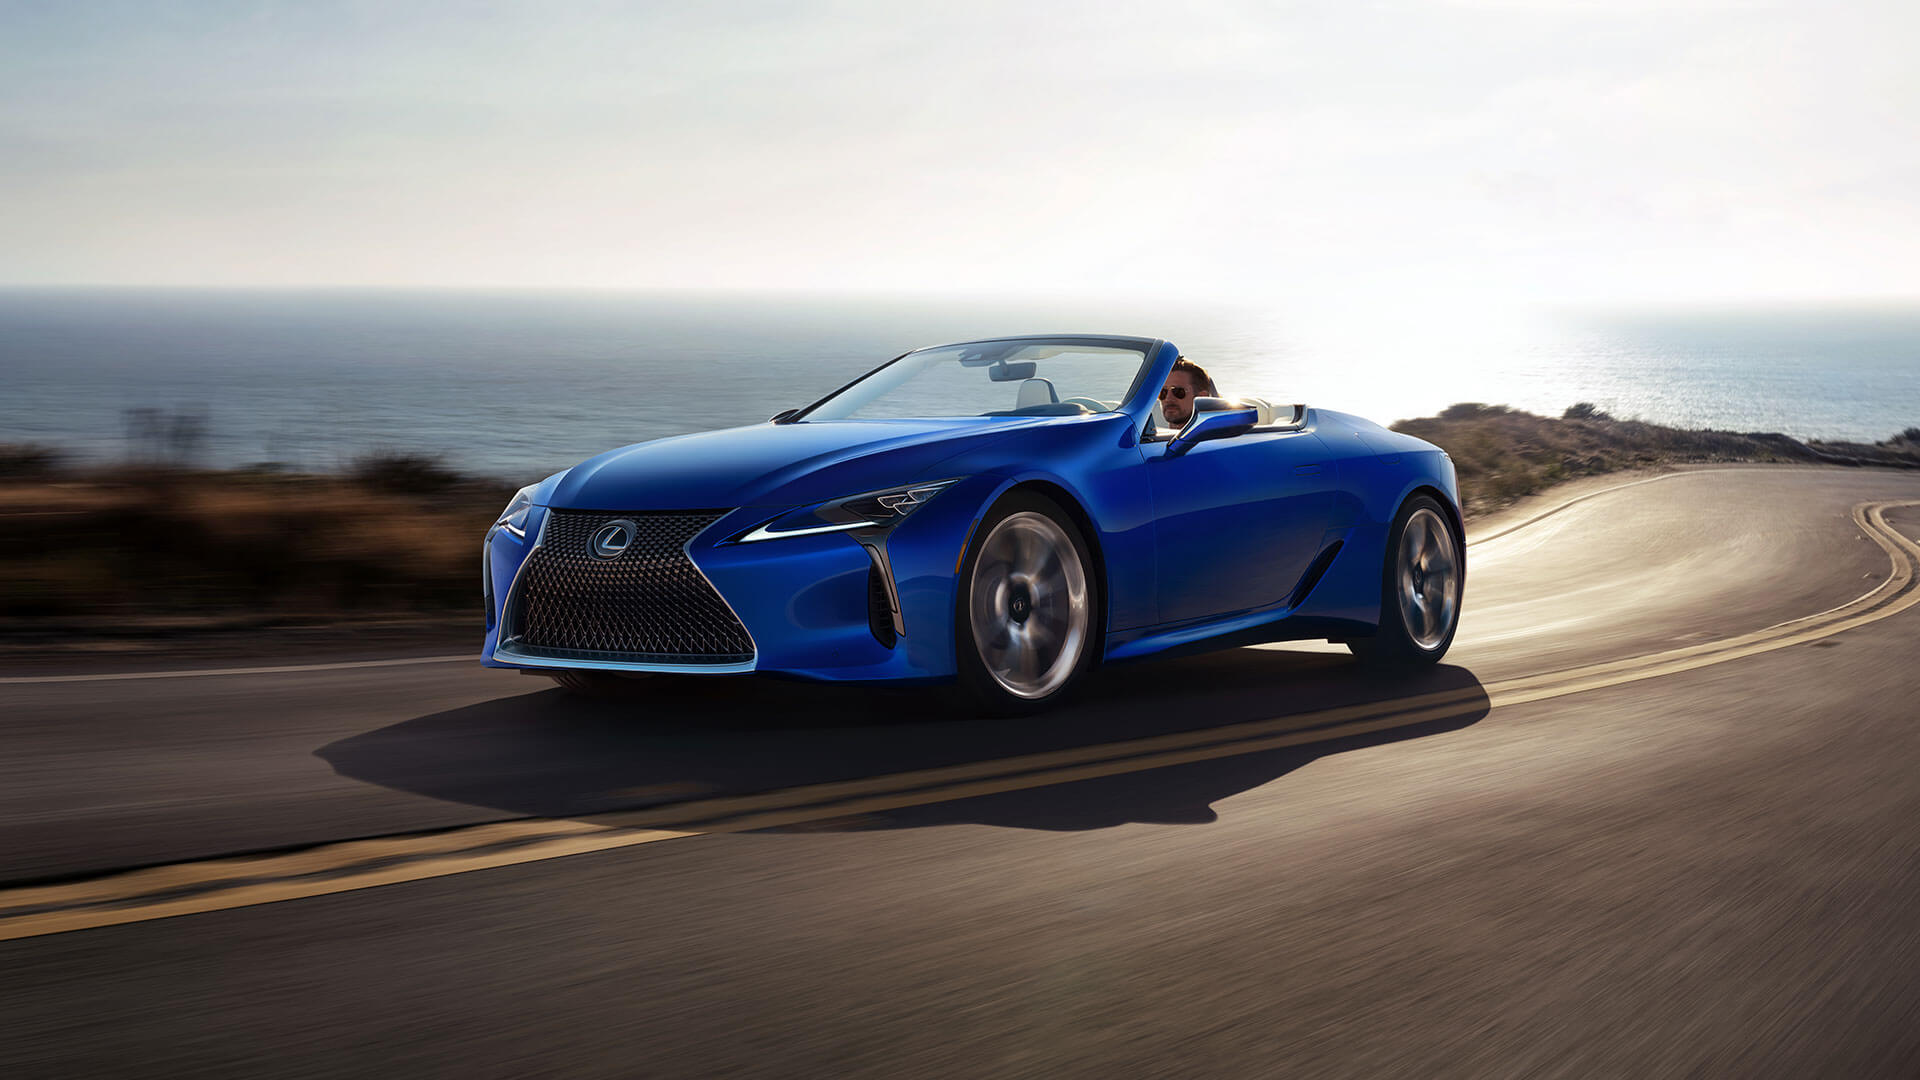 2020 lexus lc covertible next step newsletter